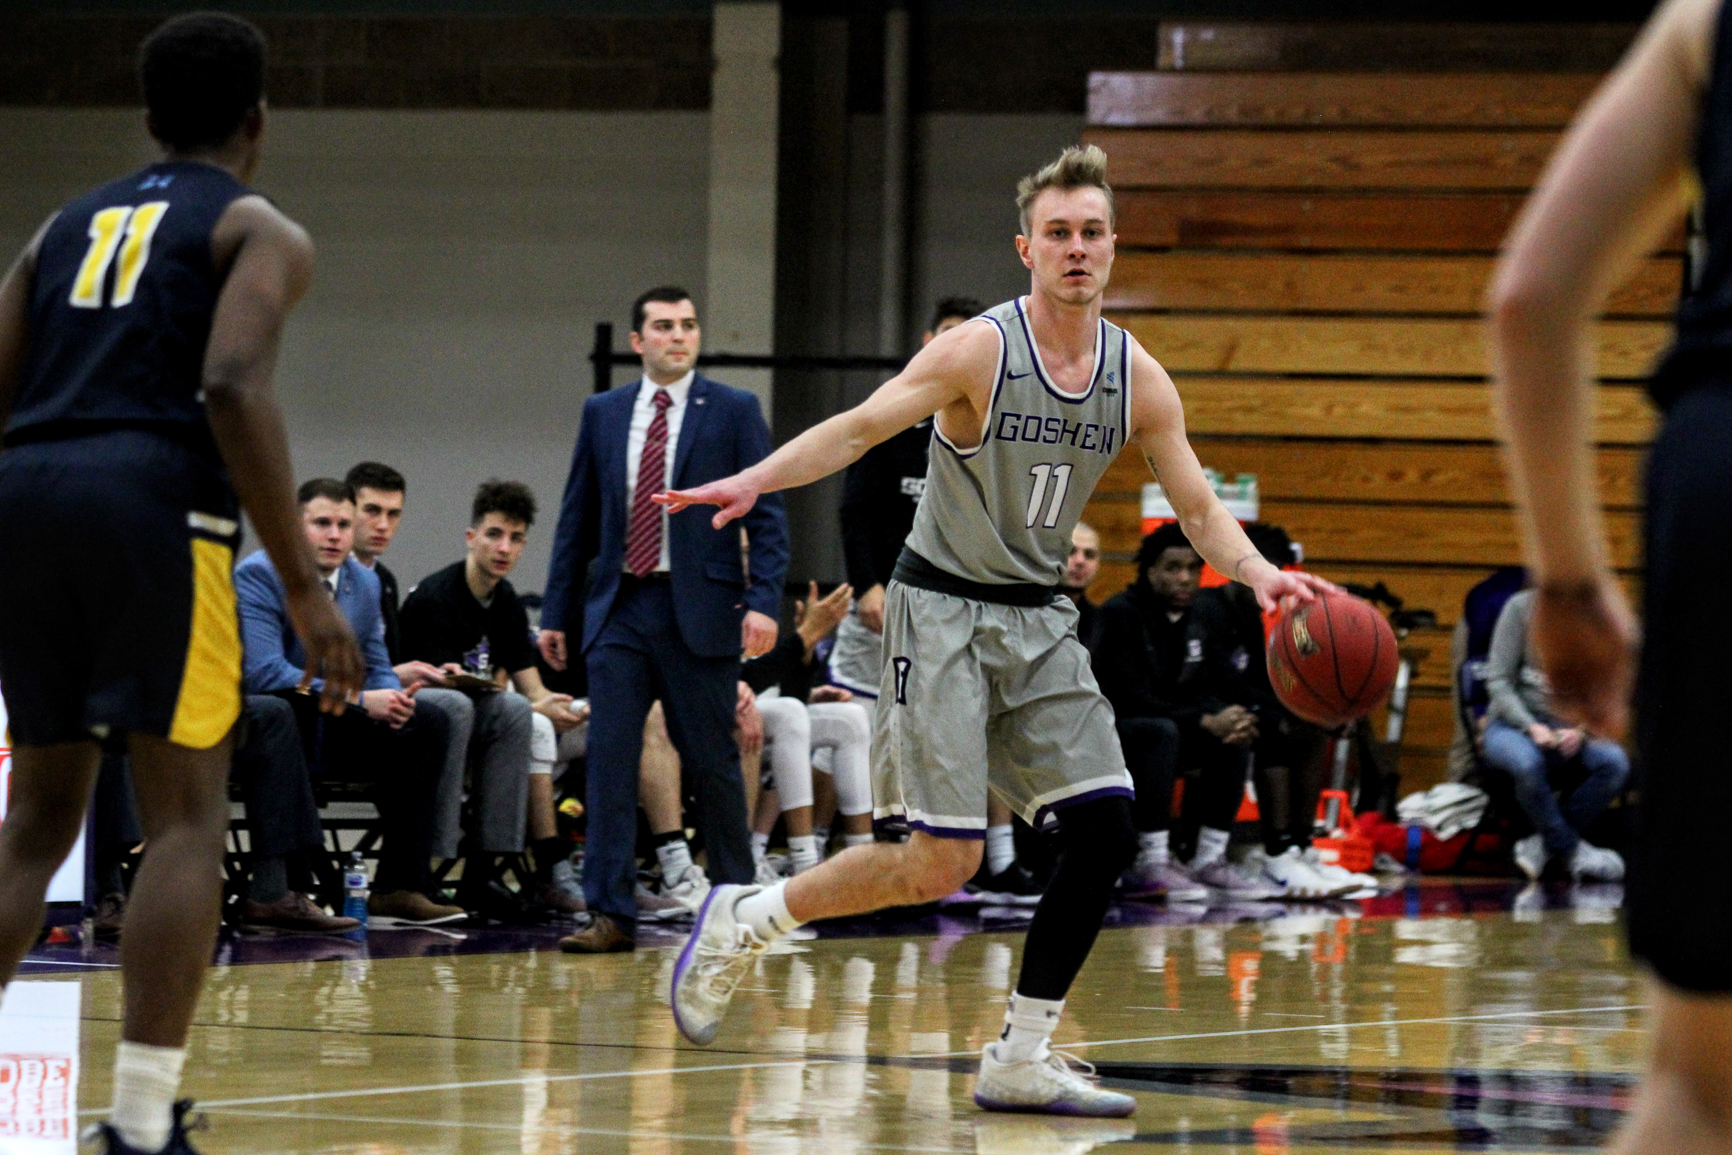 A player on the Goshen men's basketball team dribbles the ball down the court during a game